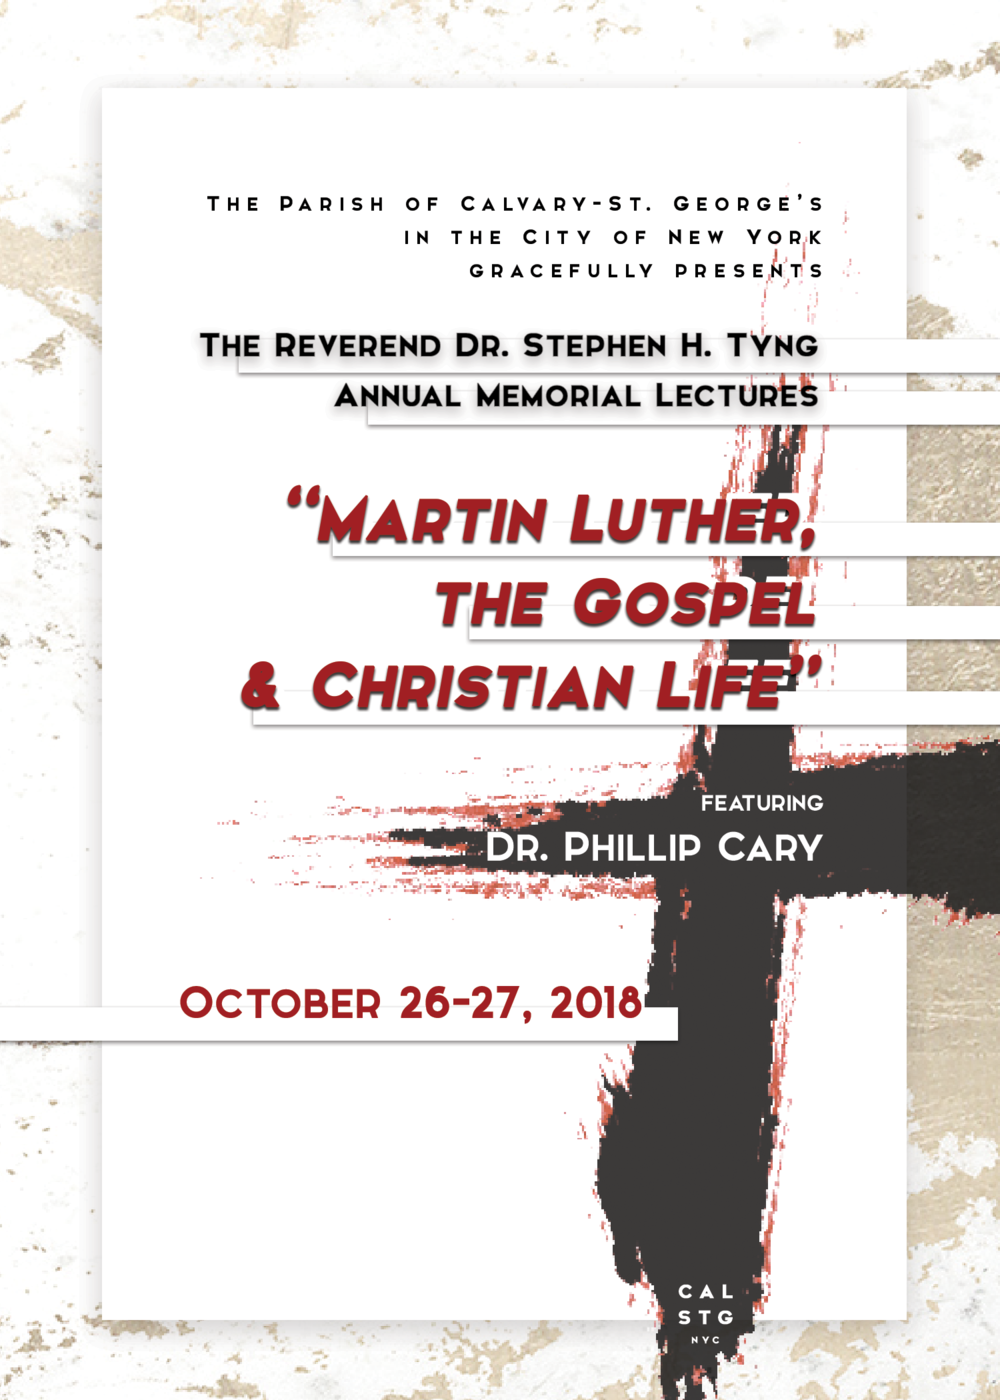 - These annual Tyng Lectures take place once a year as a series of lectures where we invite an expert to speak on a specific theological subject.Calvary-St. George's seeks to celebrate the great doctrinal truths of the Protestant Reformation through this new lecture series. The hope is to revive the great Protestant tradition of St. George's and the Episcopal Church through theological and historical engagement.This year, we are honored that renowned philosopher Dr. Phillip Cary will be presenting.